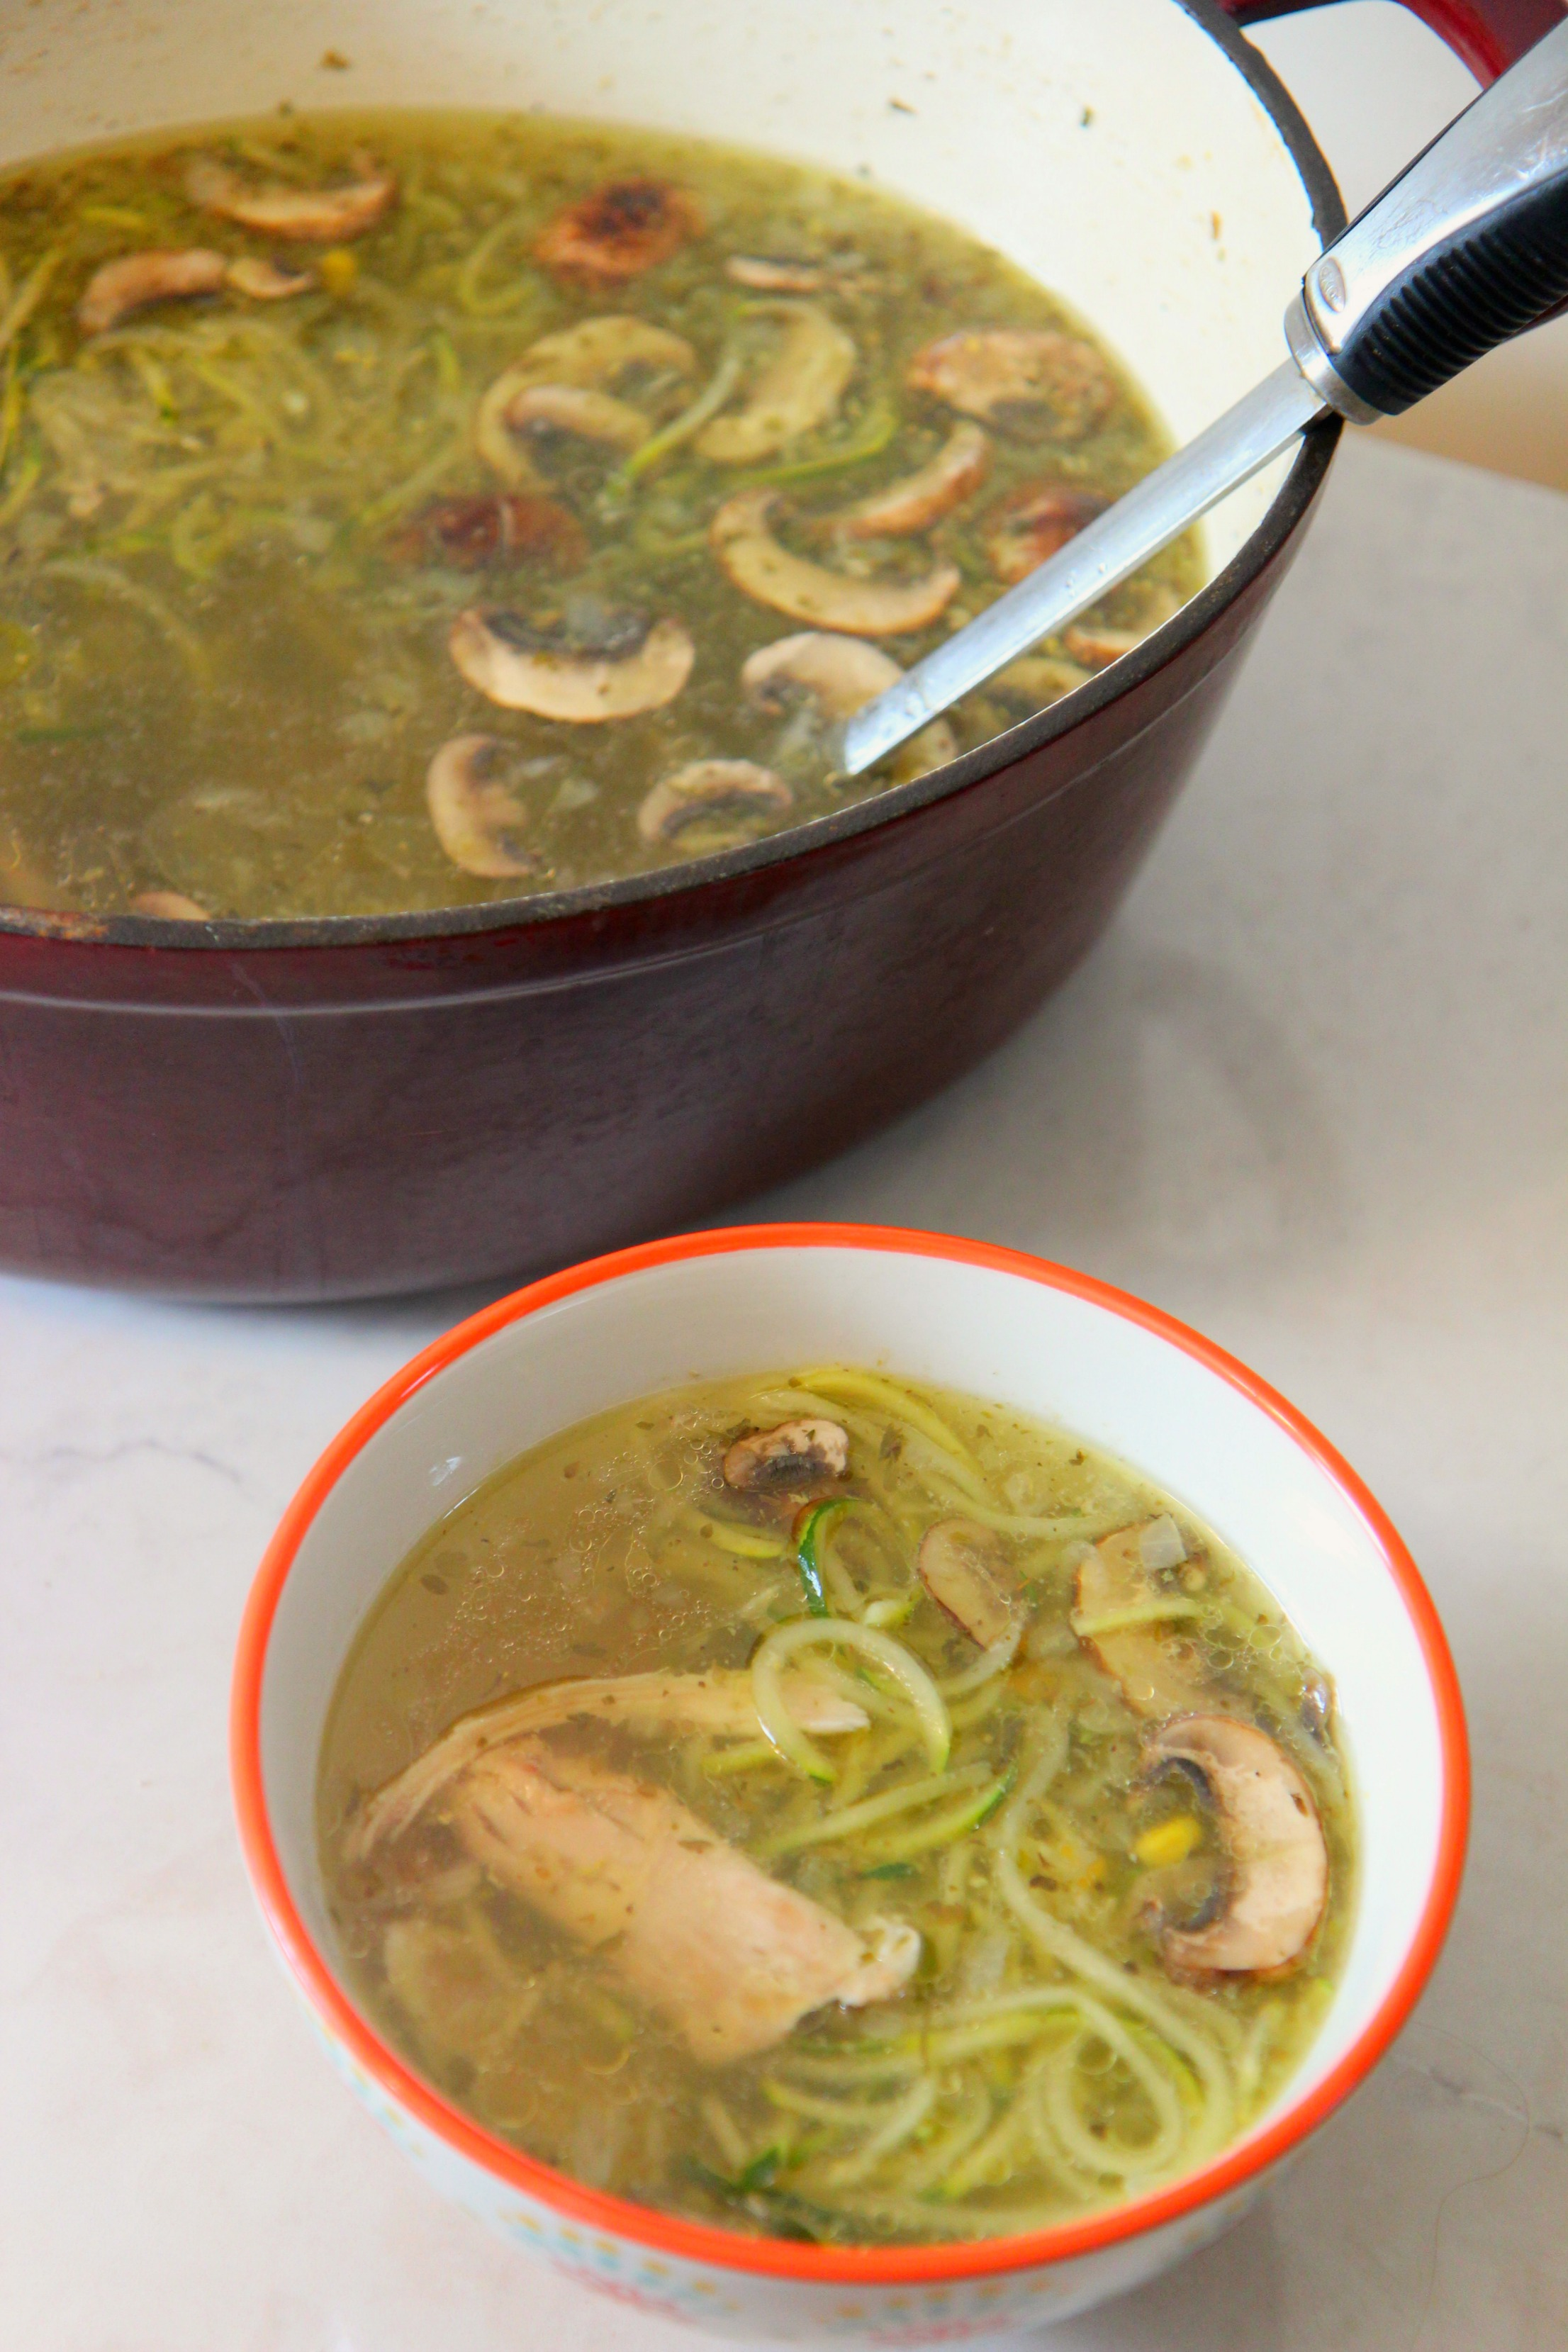 Chicken Zoodle Soup made with tender zucchini noodles, moist chicken, mushrooms and seasonings